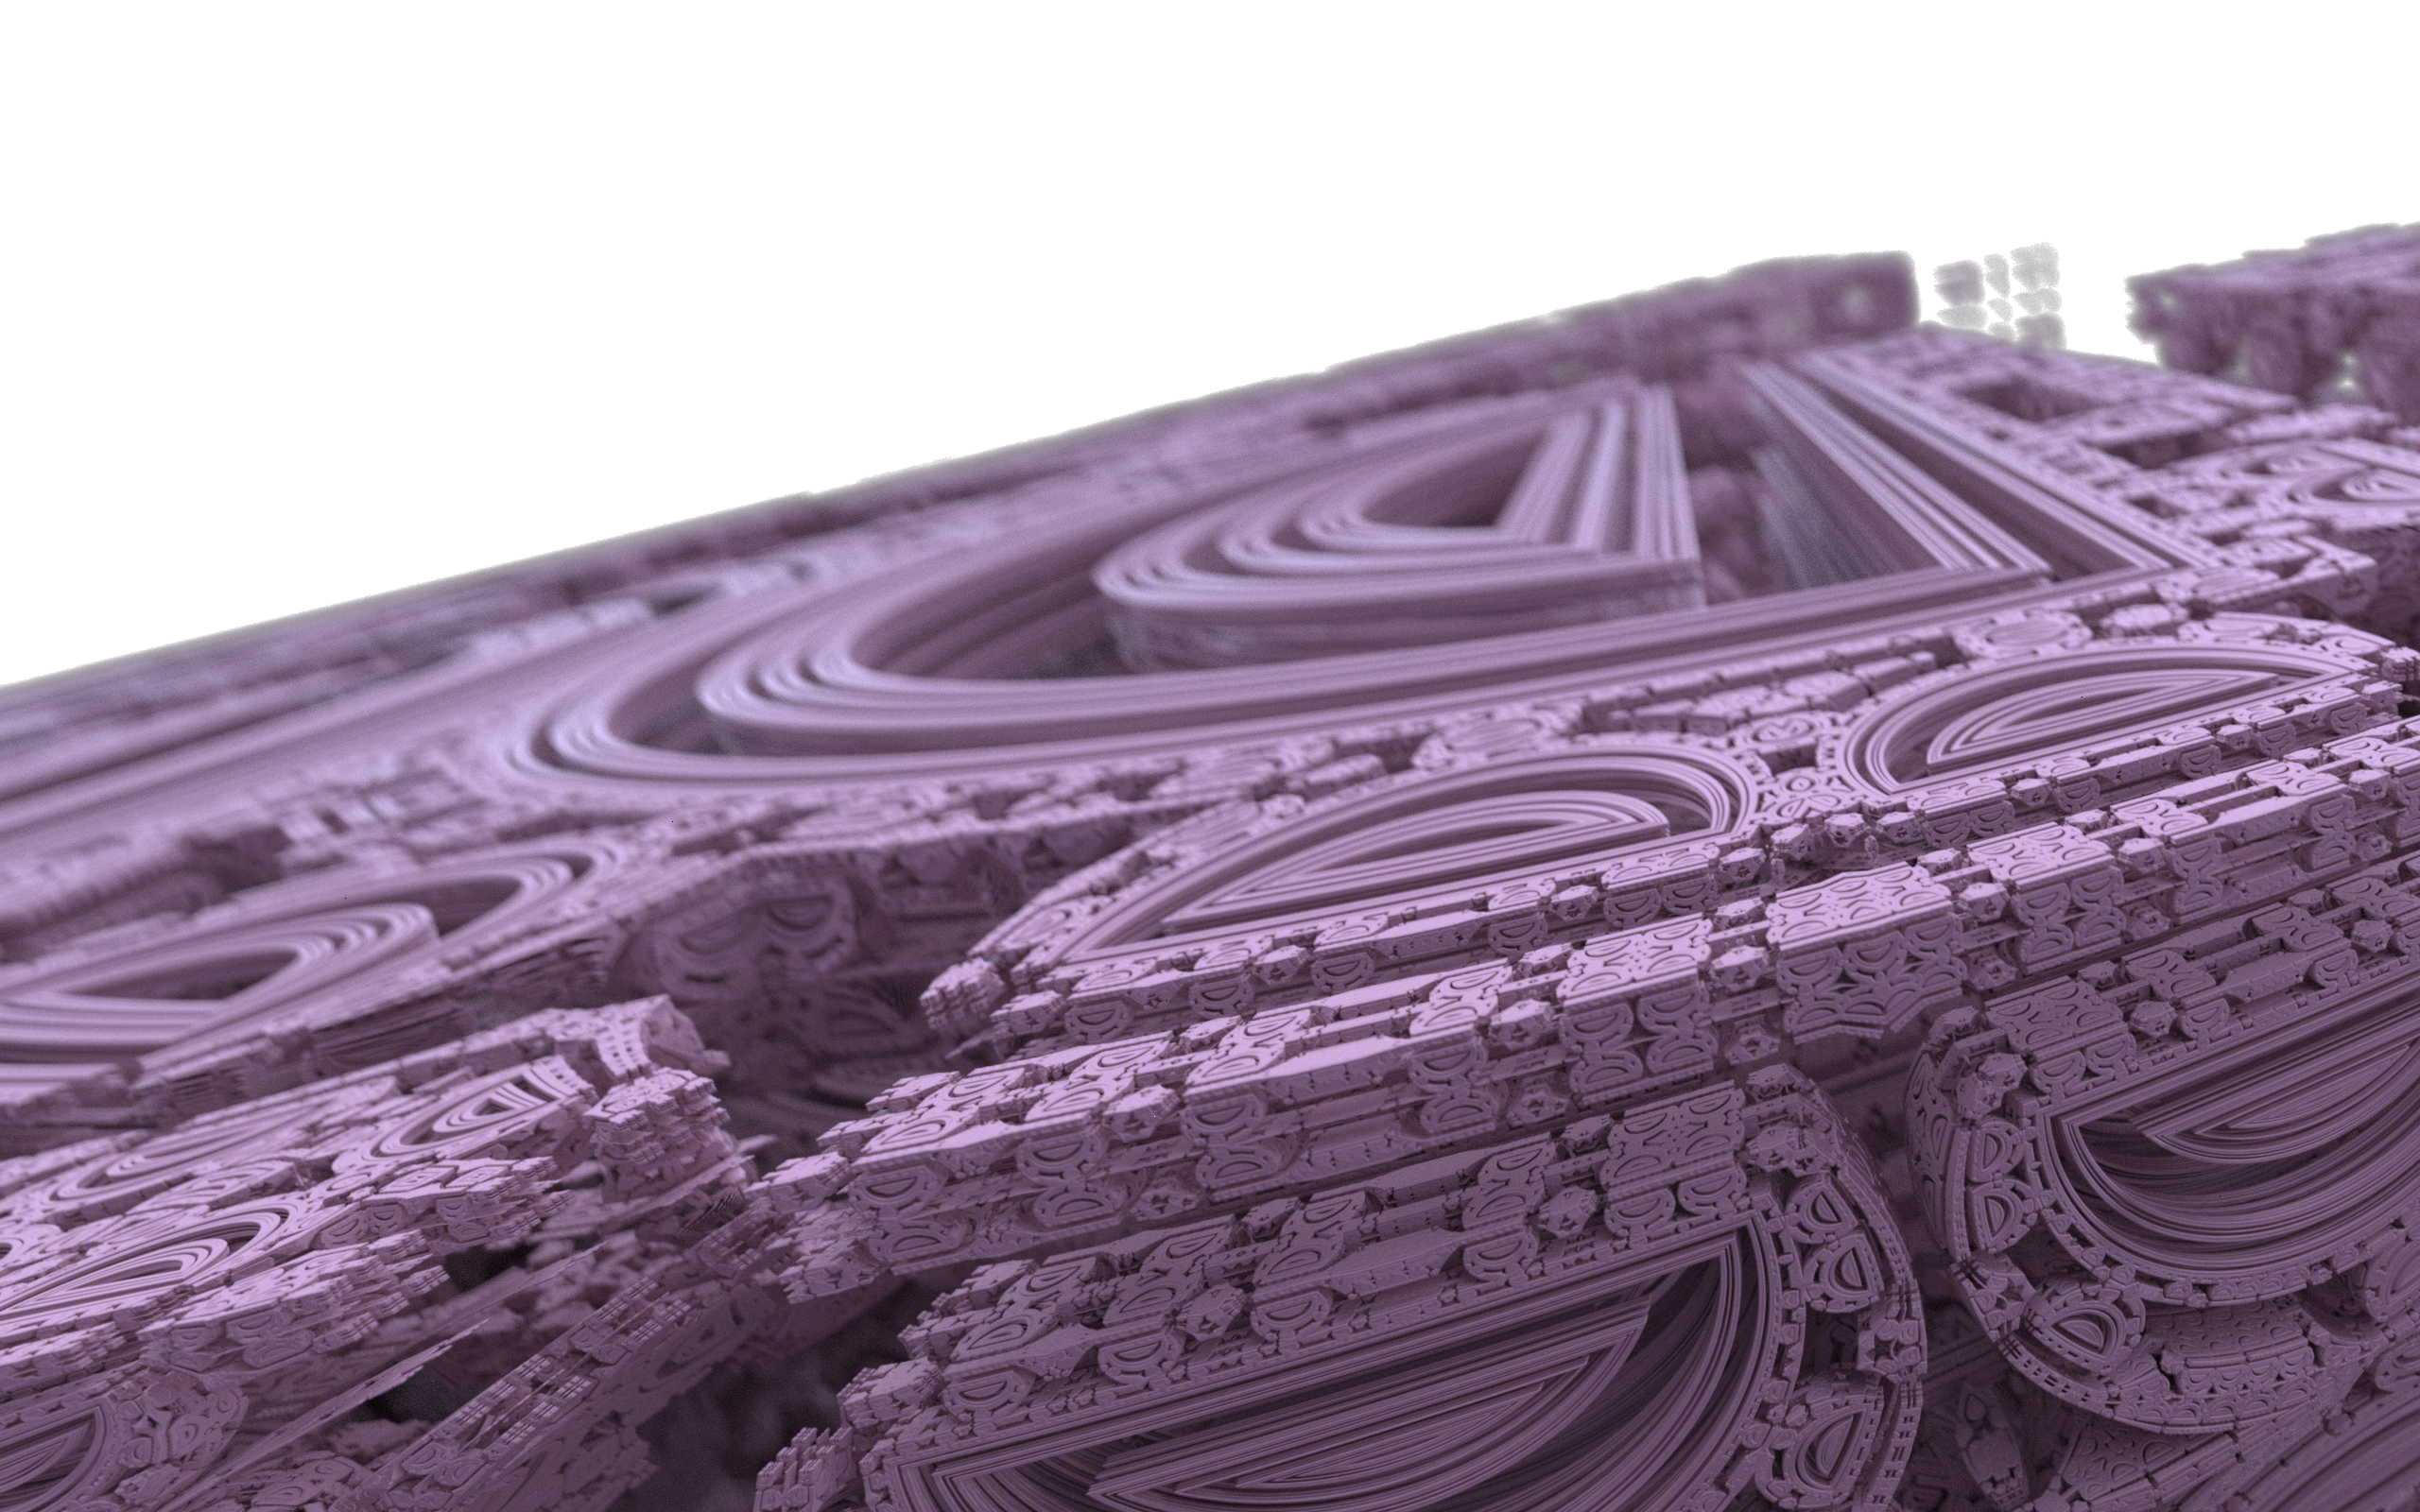 Rayn output example - this renderer uses ultraviolet for its math